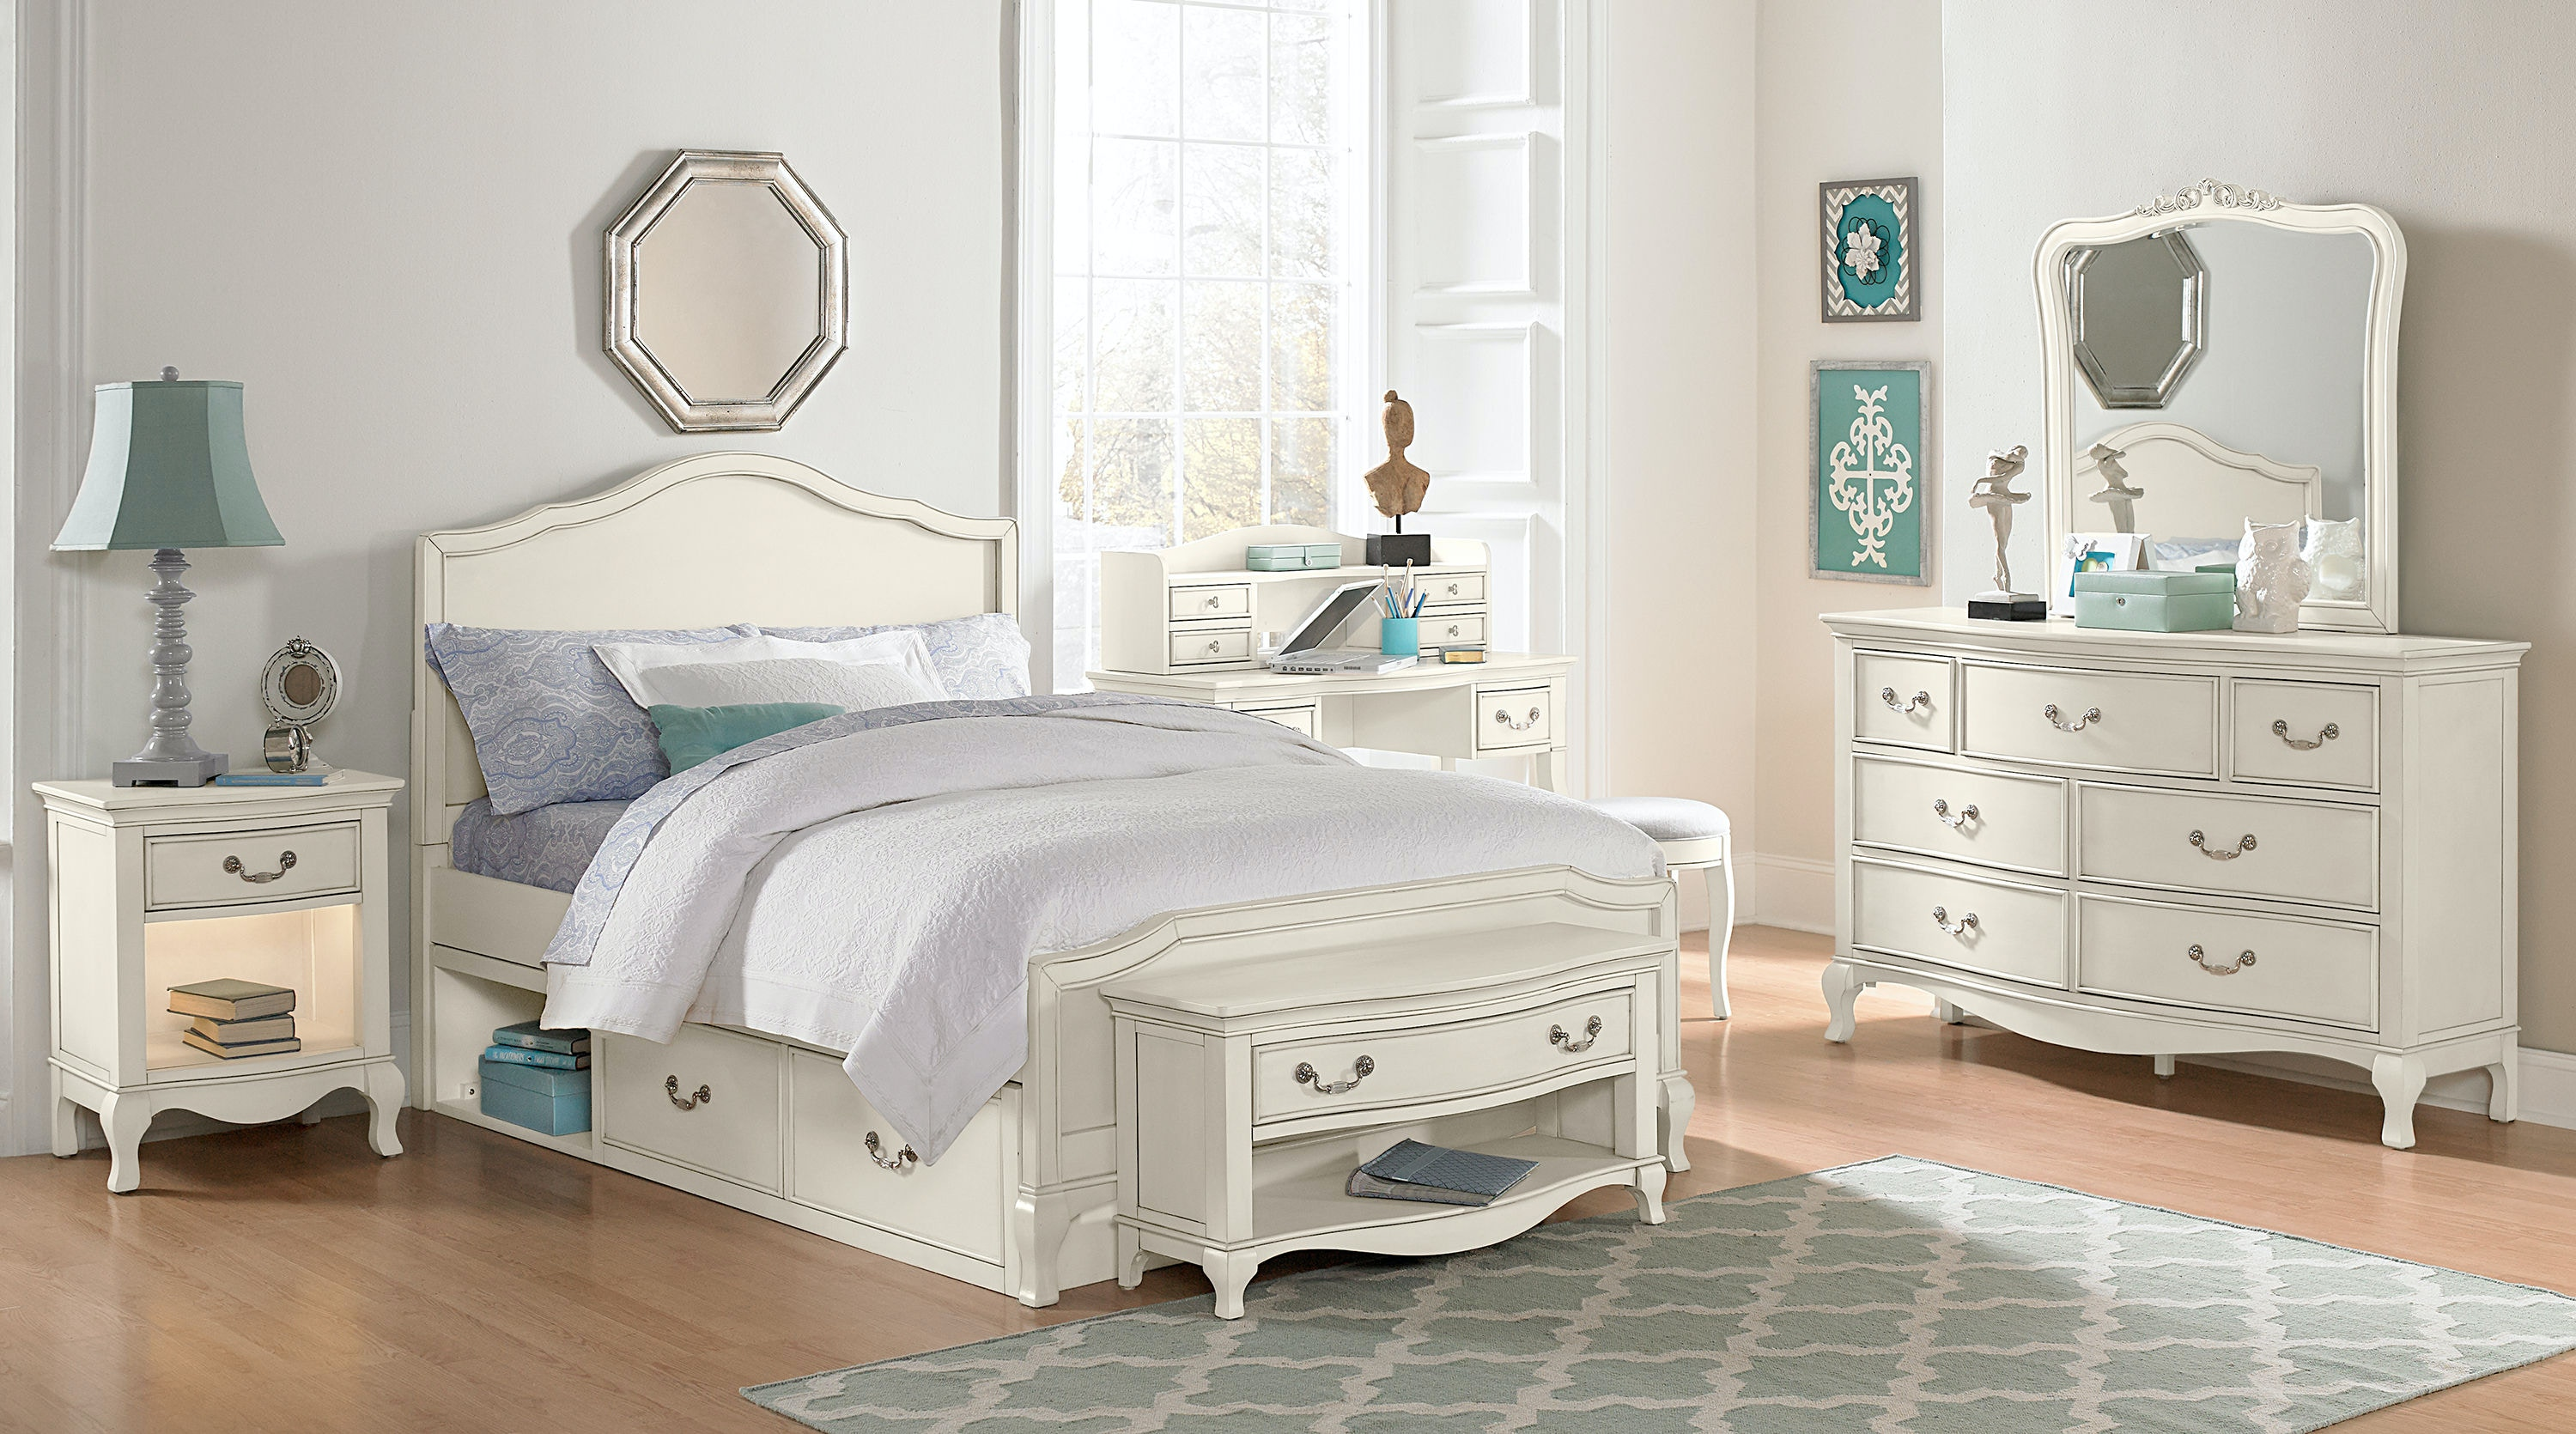 Hillsdale Kids and Teen Furniture   Toms Price Furniture   Chicago